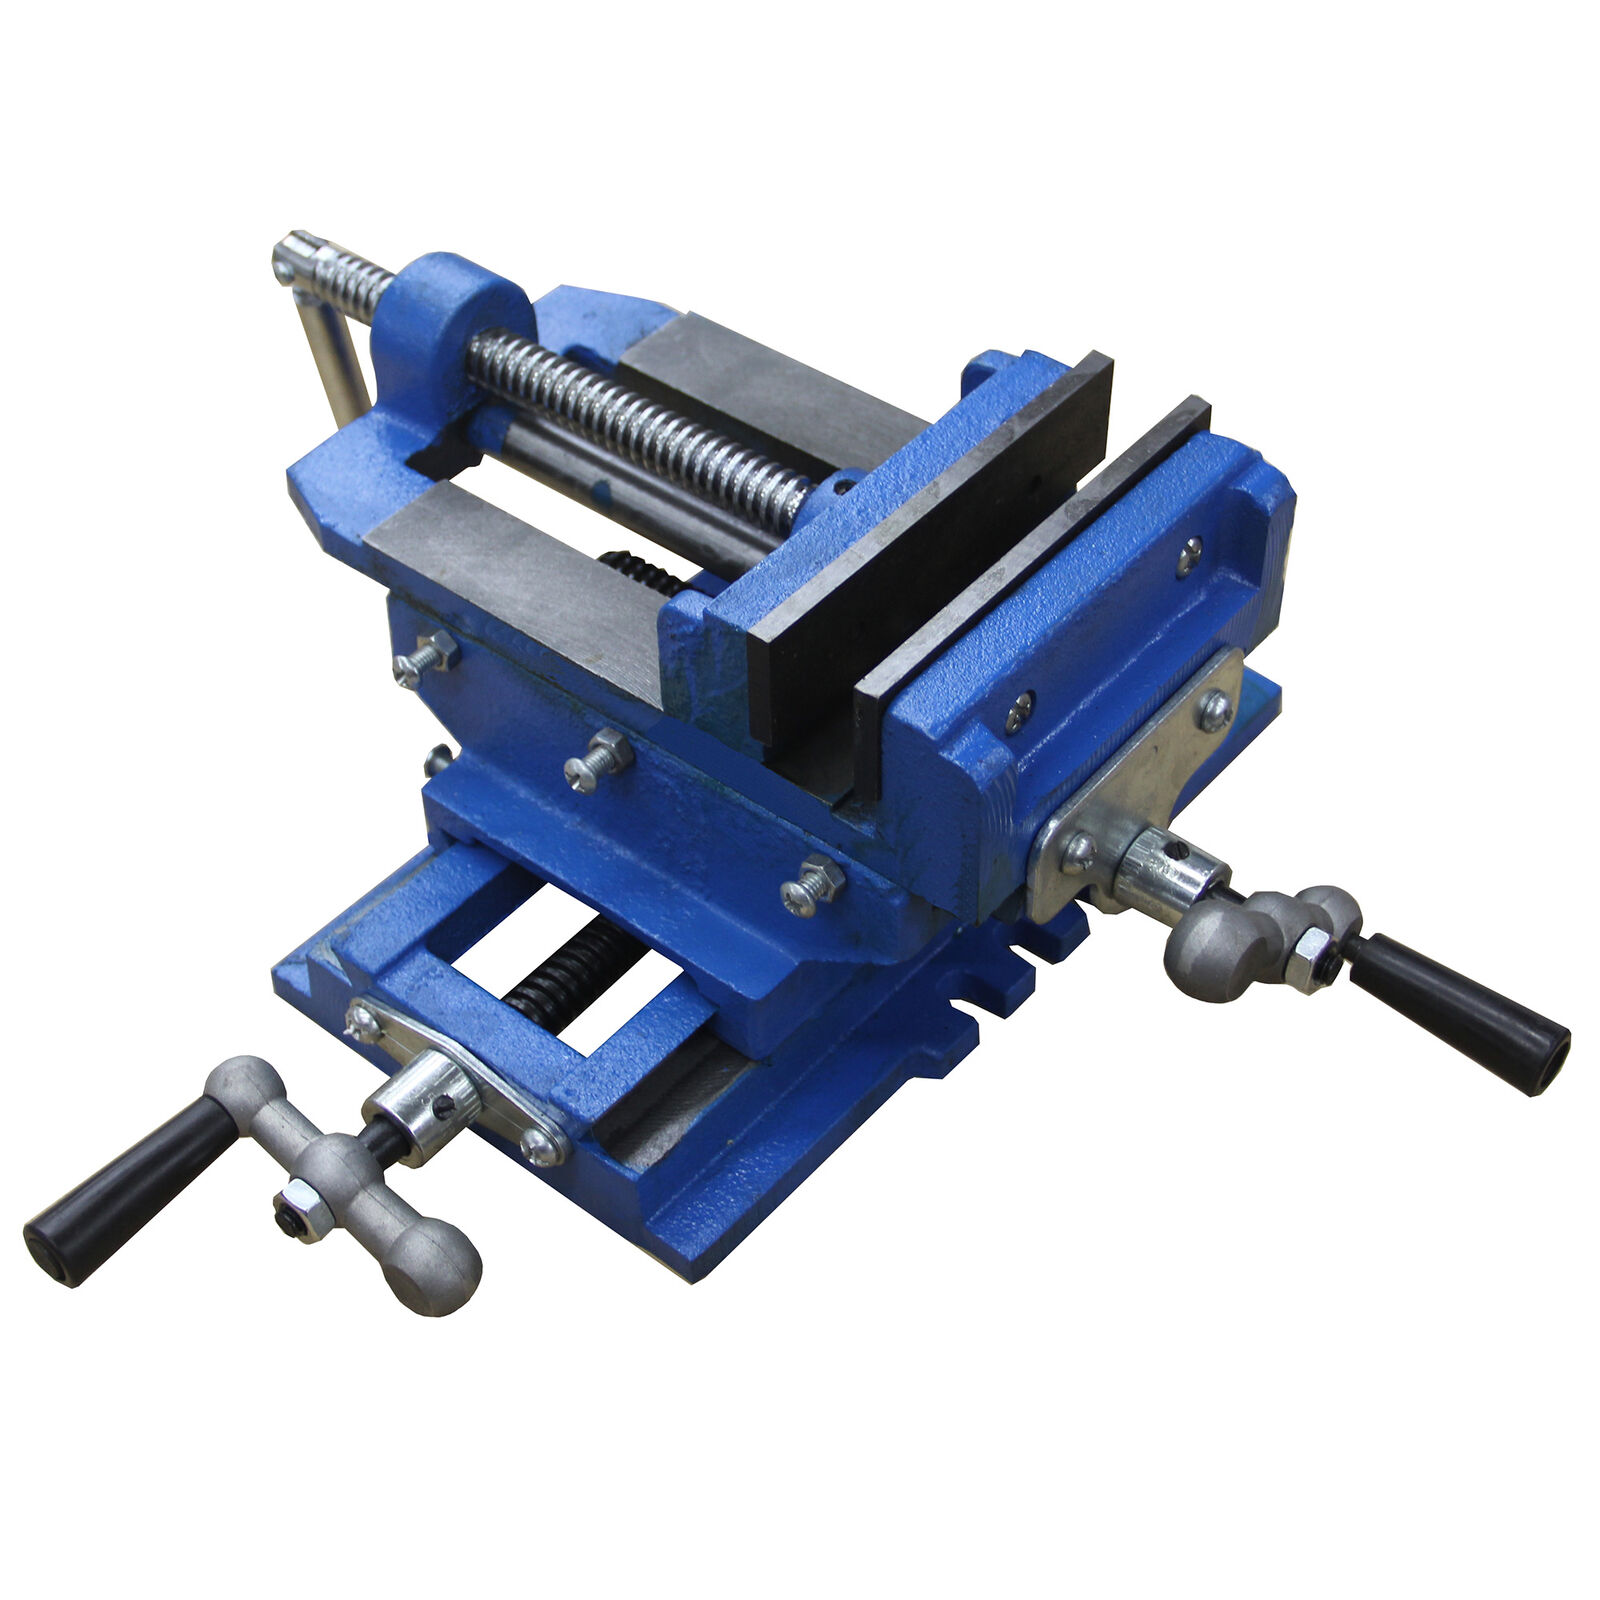 HFS 3-Inch Cradle Style Angle Drill Press Vise R